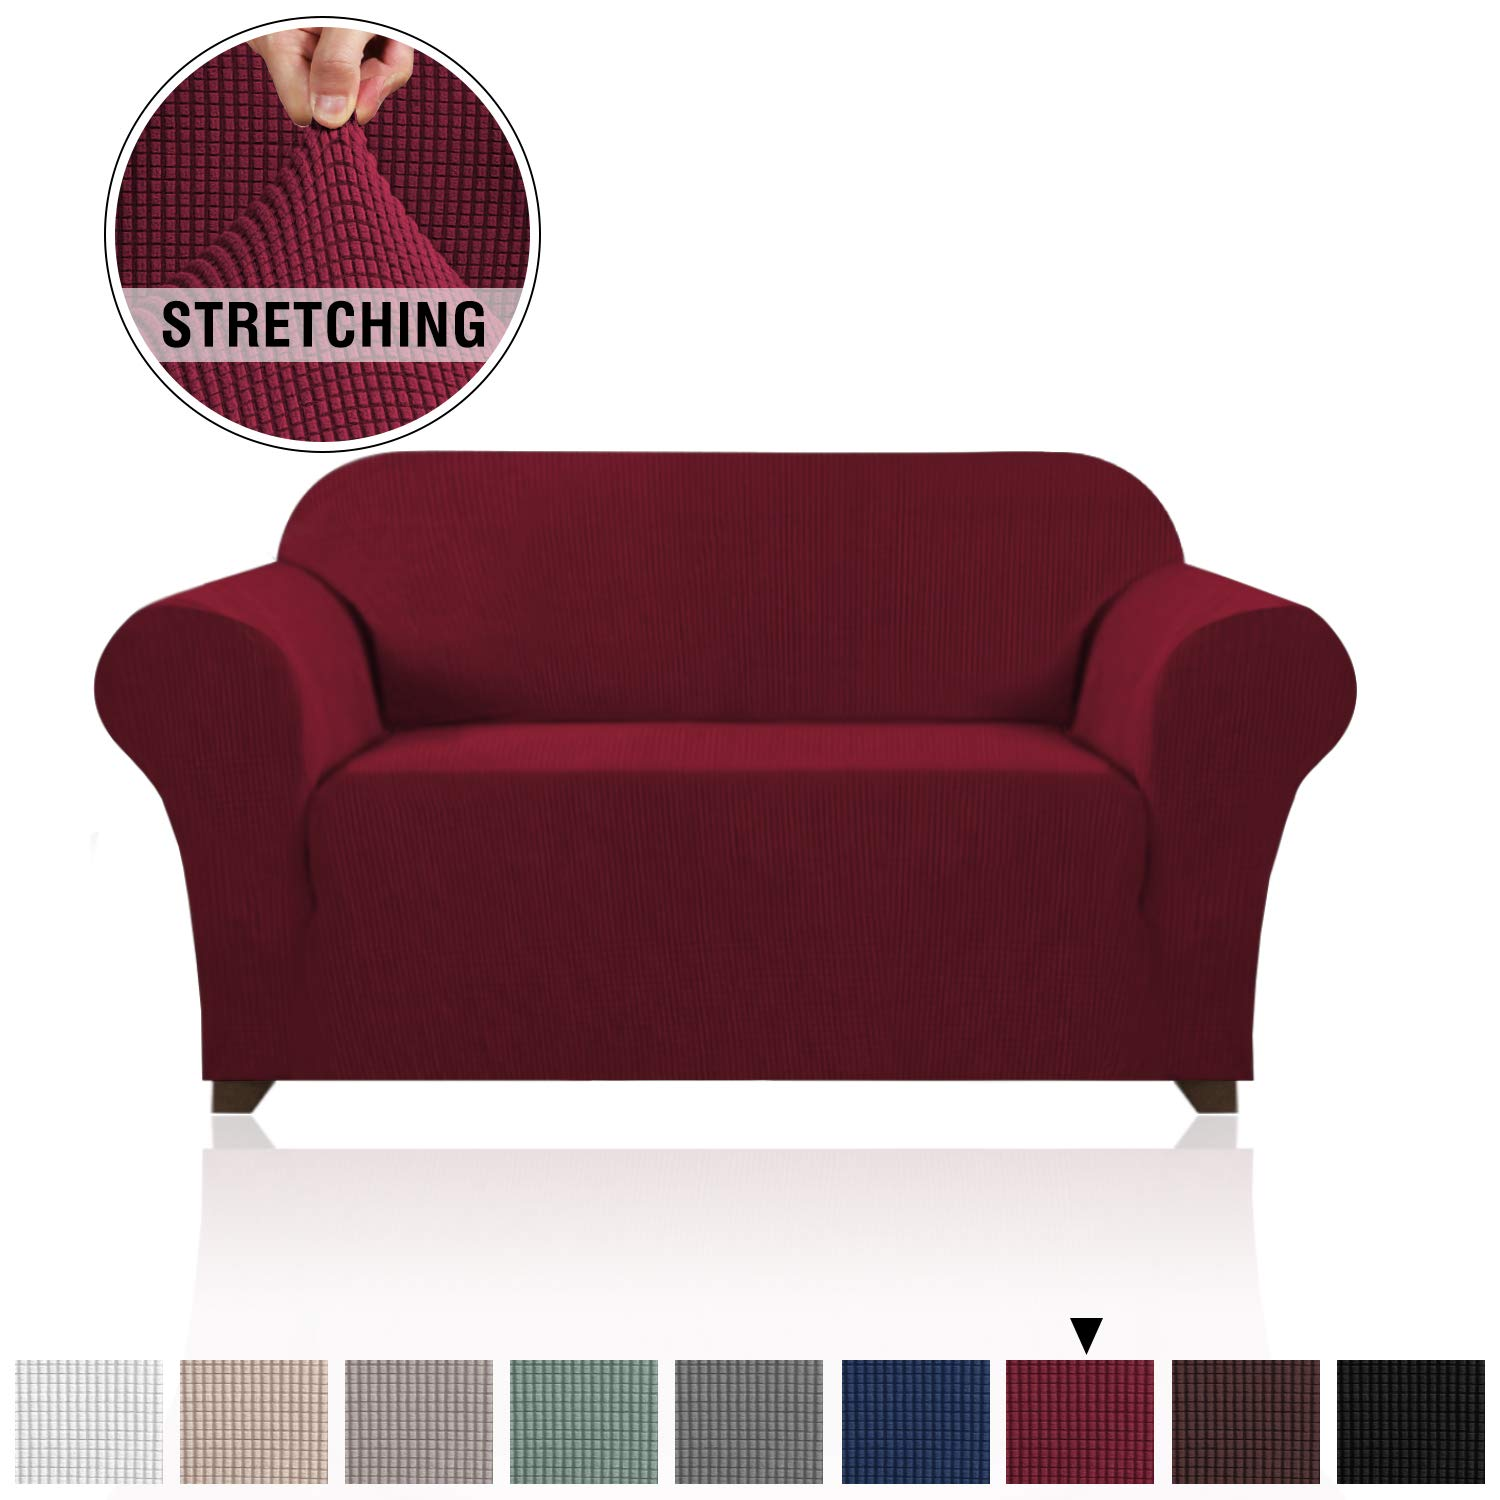 Lycra Jacquard Sofa Cover for Loveseat 1 Piece Furniture Protector/Cover for Sofa and Couch Stylish Polyester Spandex Jacquard Fabric Small Checks Sofa Slipcover (Loveseat, Burgundy Red)